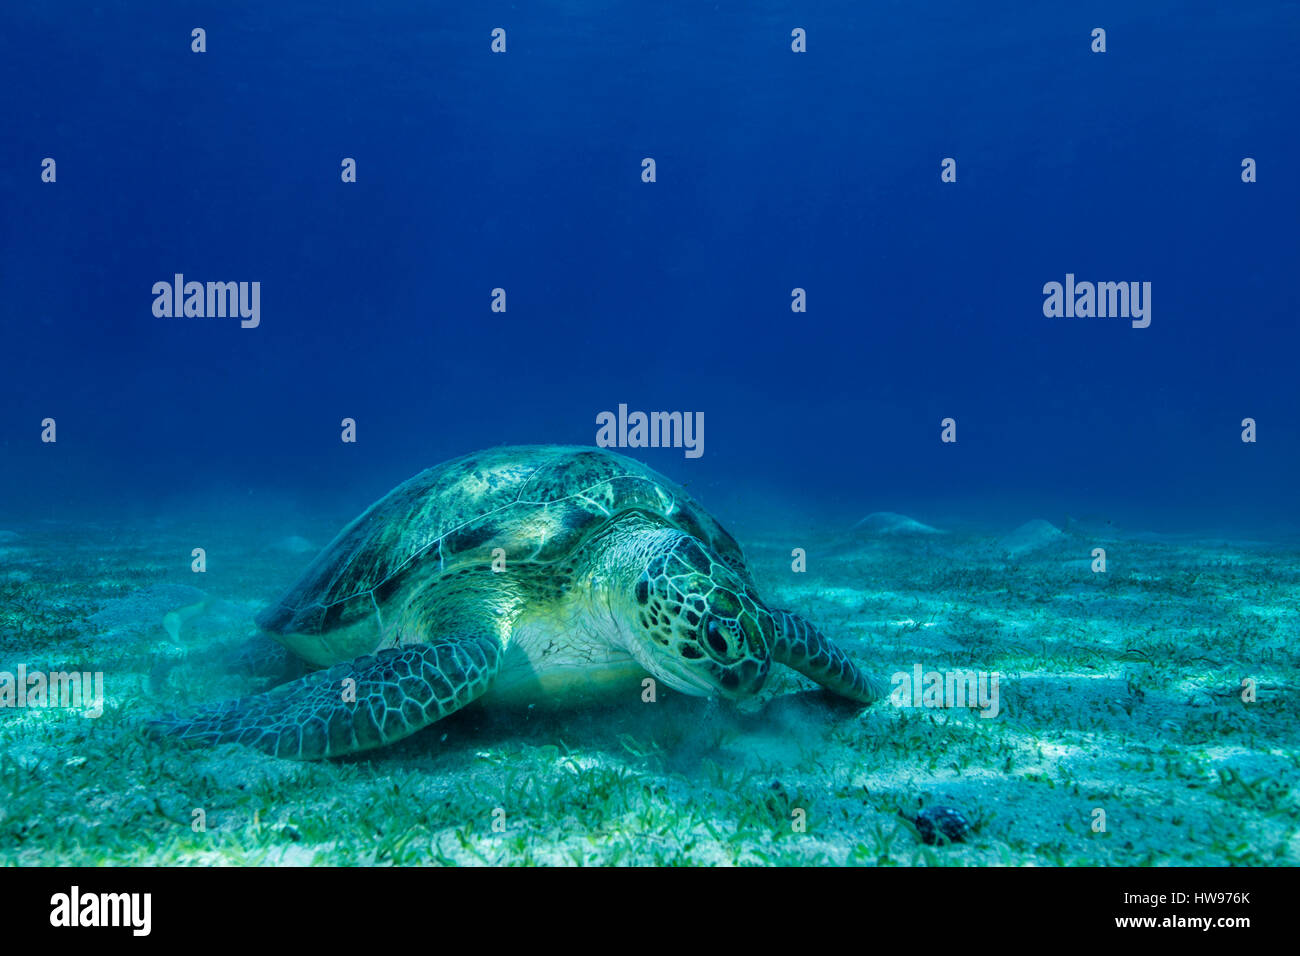 Green Turtle (Chelonia mydas) on a sandy ground, Red Sea, Ägyten - Stock Image